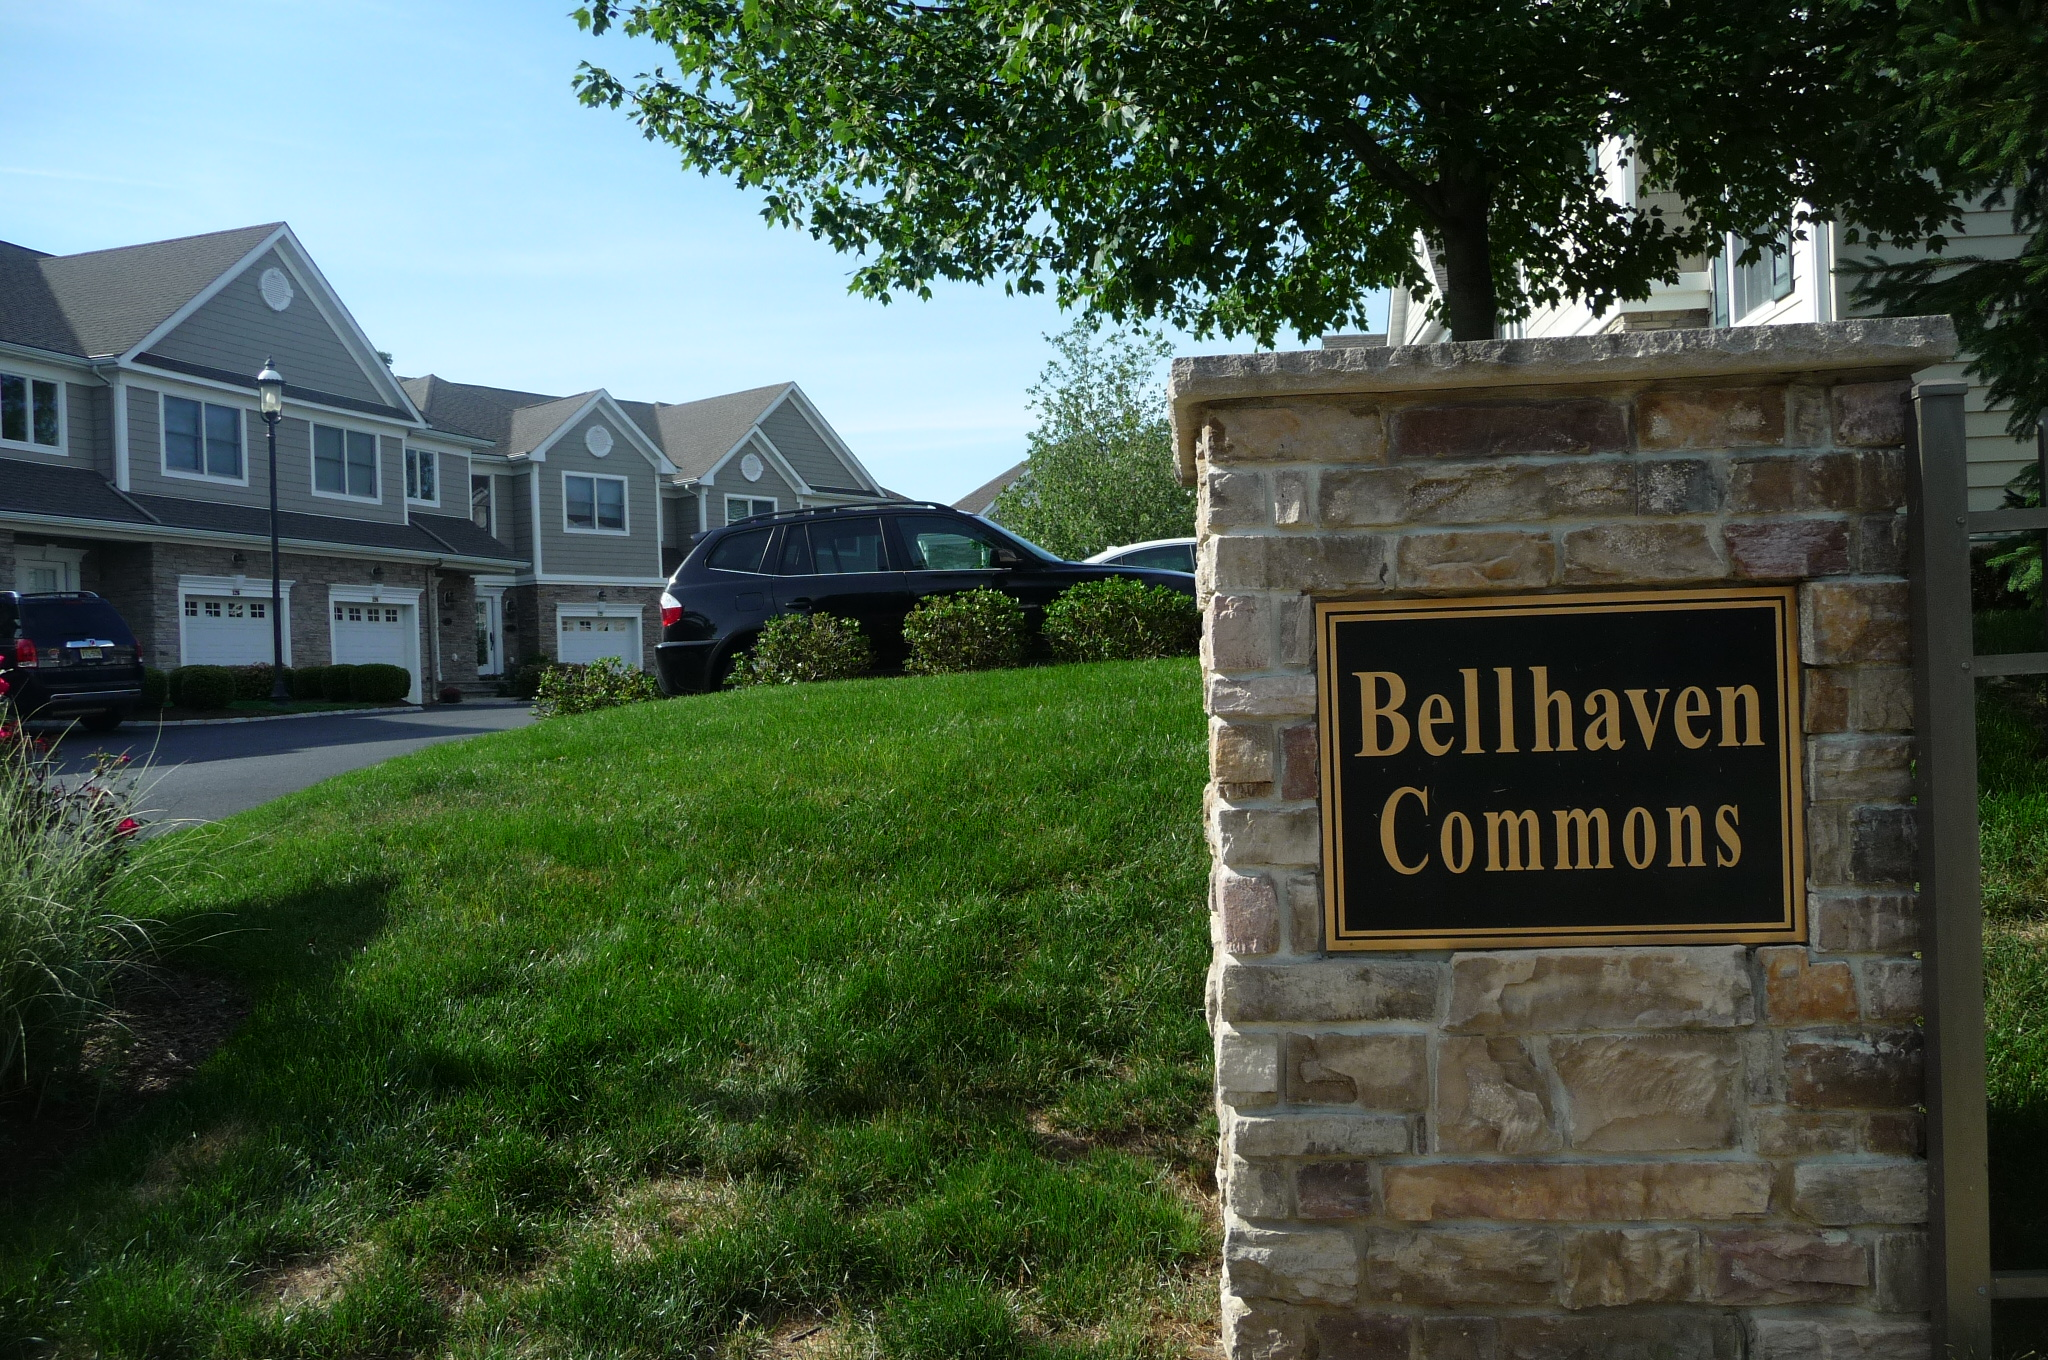 Bellhaven Commons is on the west side of Red Bank overlooking Swimming River